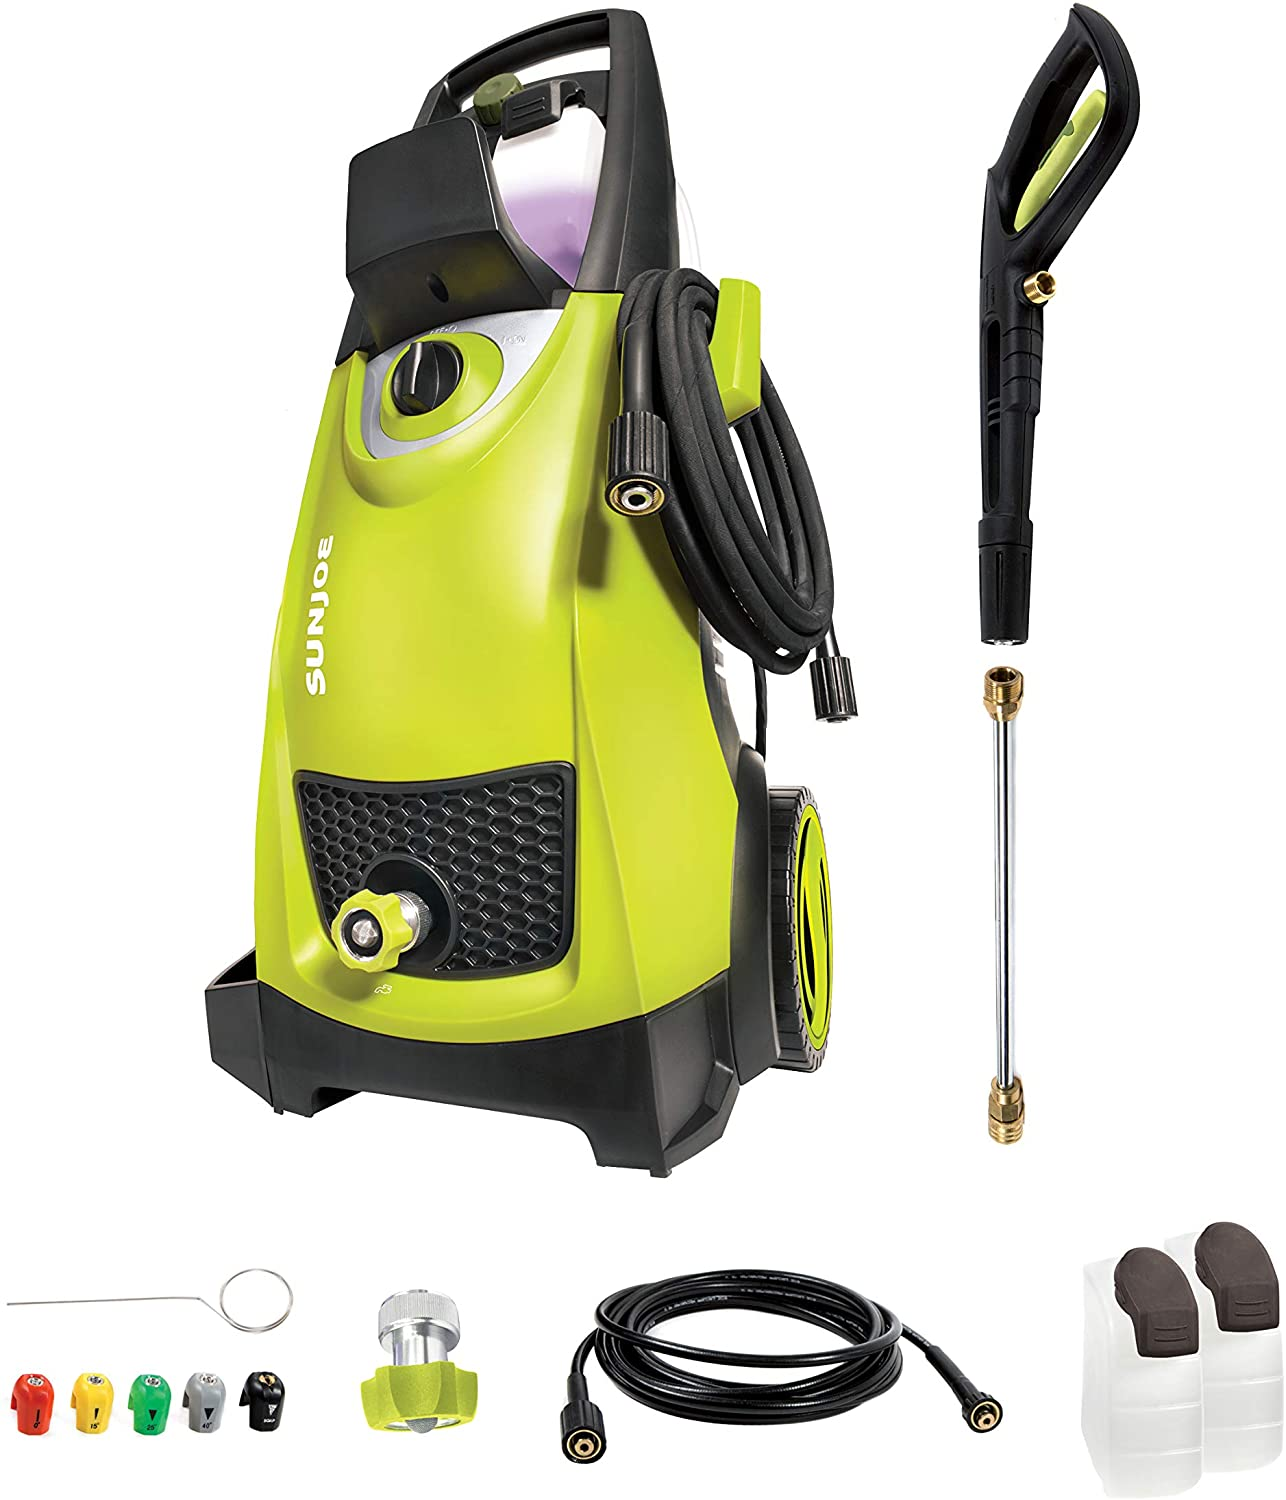 Best Lawn And Garden Tools In 2021